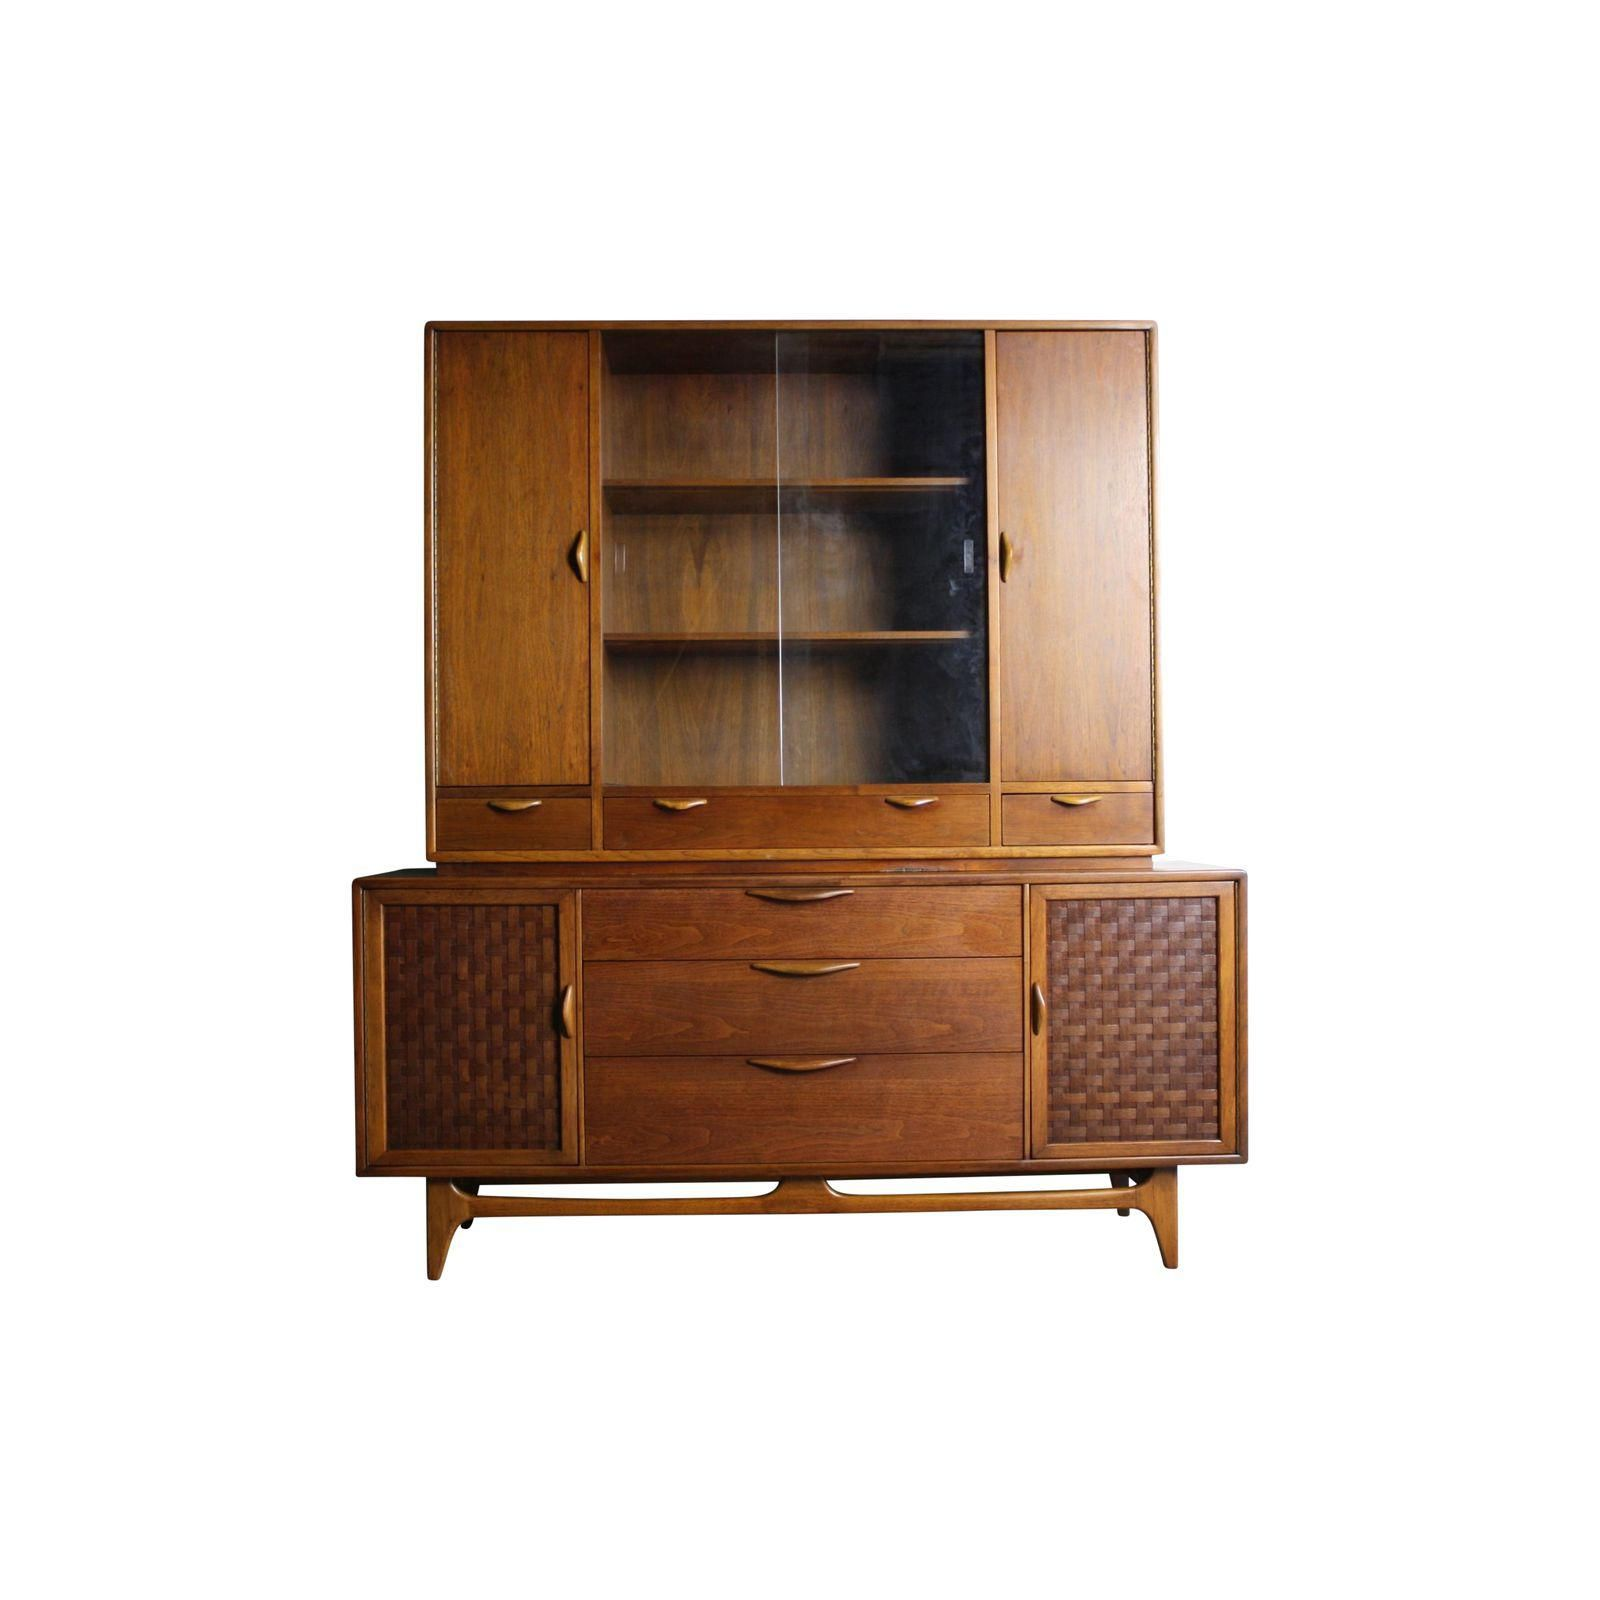 image of lane perception midcentury modern china cabinet